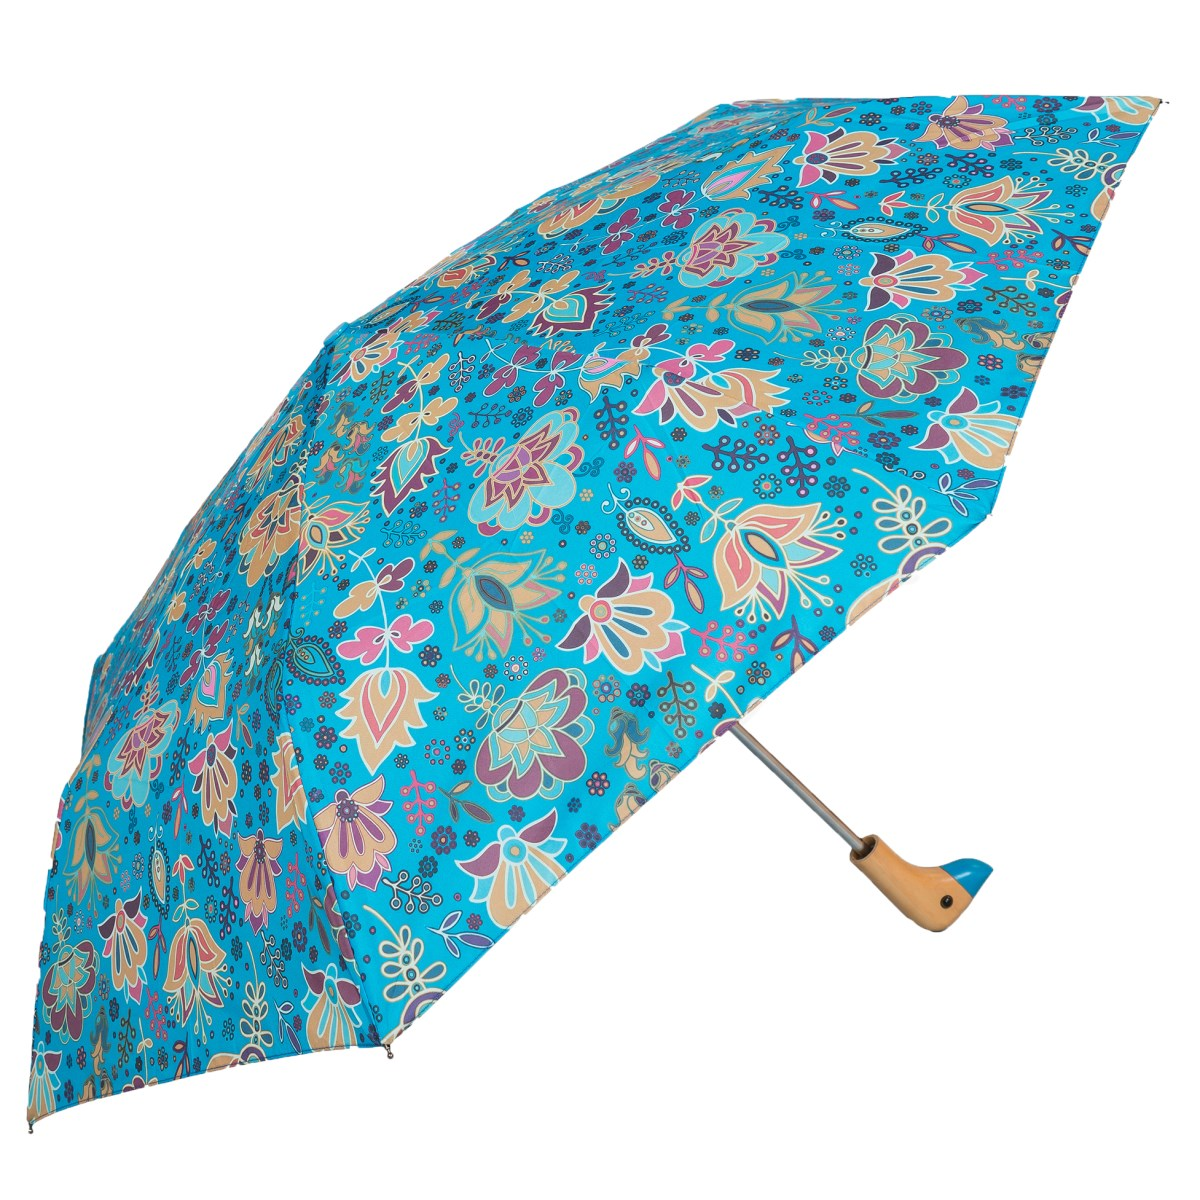 Pale Paisley Print Wooden Duck Head Handle Ladies Compact Umbrella (3489)